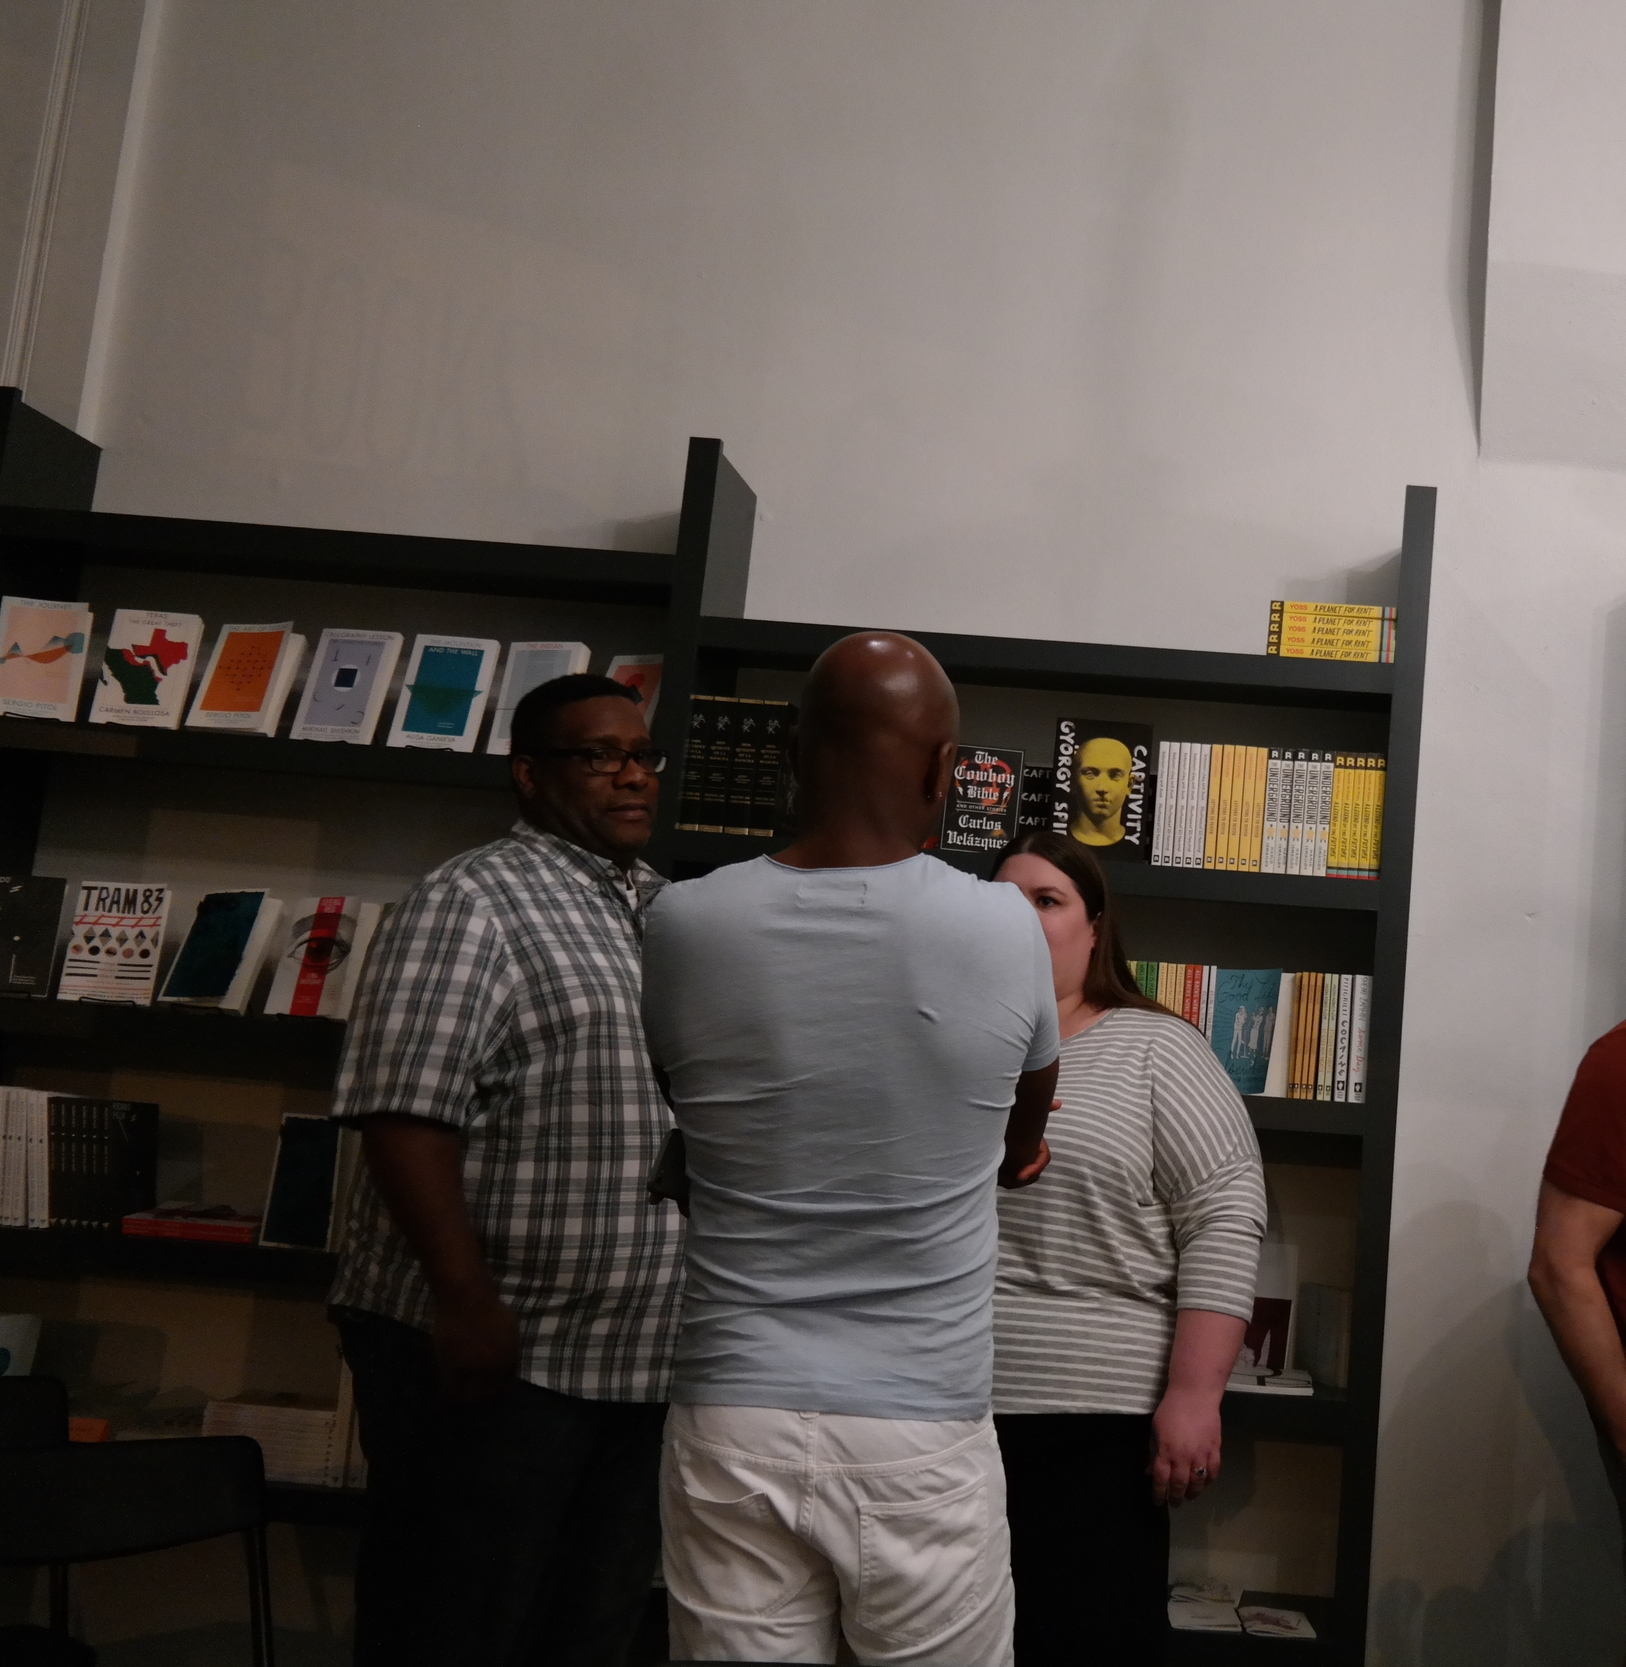 Lots of discussions after the readings